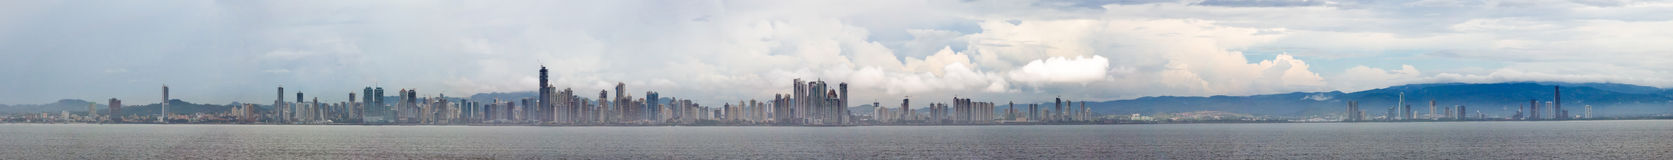 Panama city panoramic stock photo